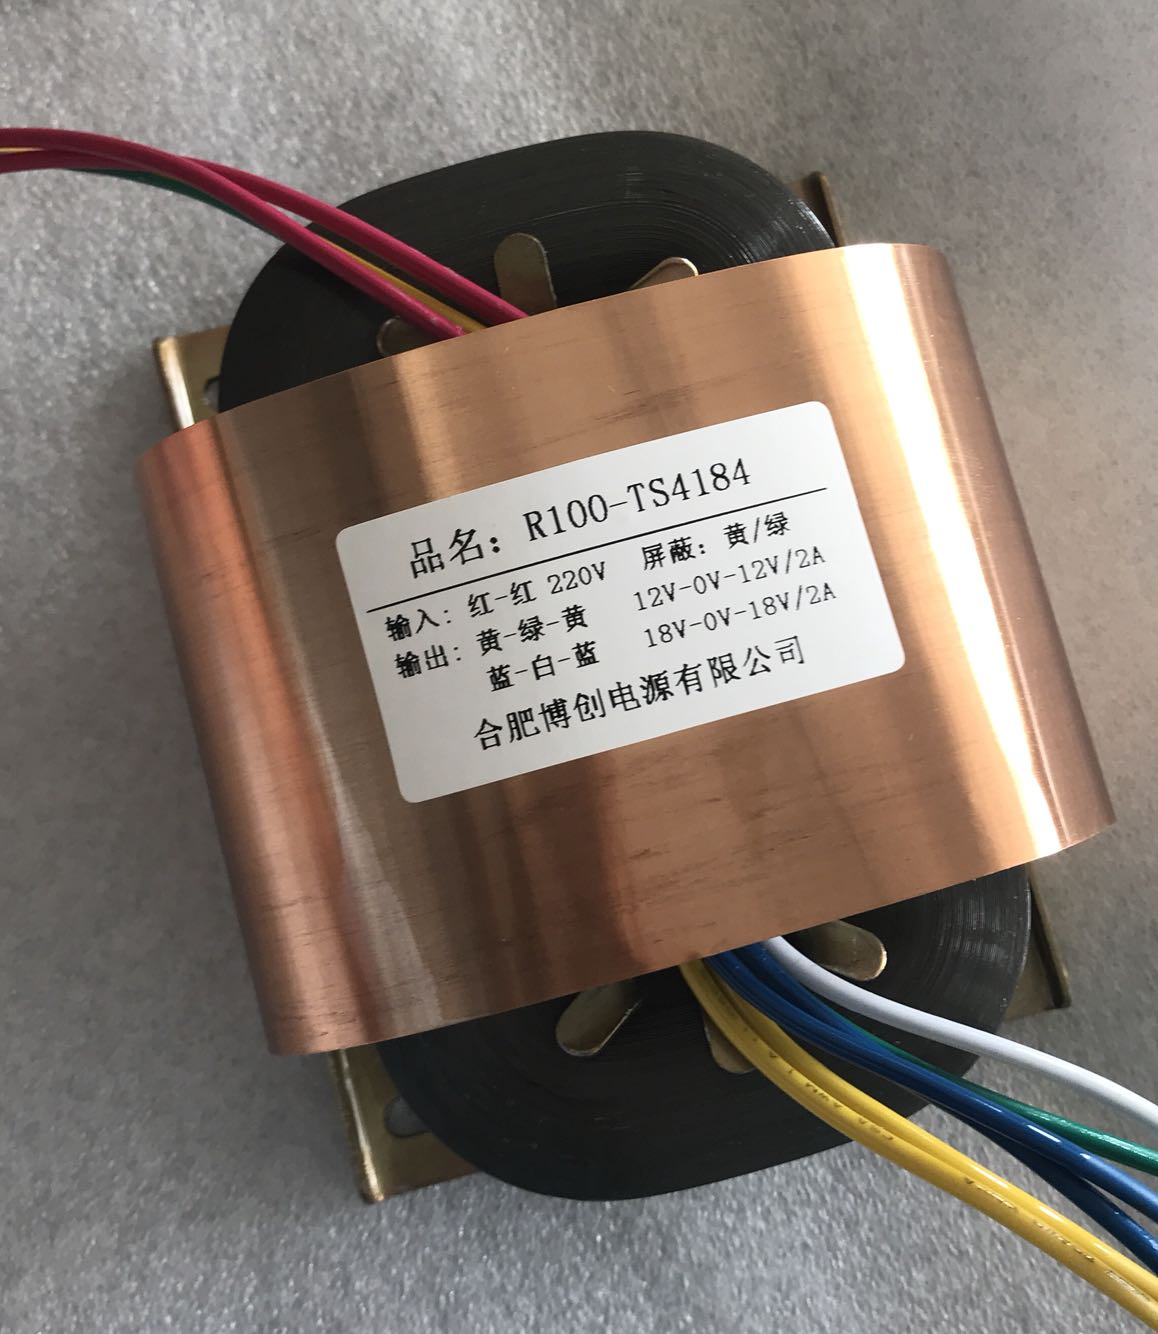 12V-0V-12V 2A 18V-0V-18V 2A R Core Transformer 120VA R100 custom transformer 220V copper shield Power amplifier 12v 2a